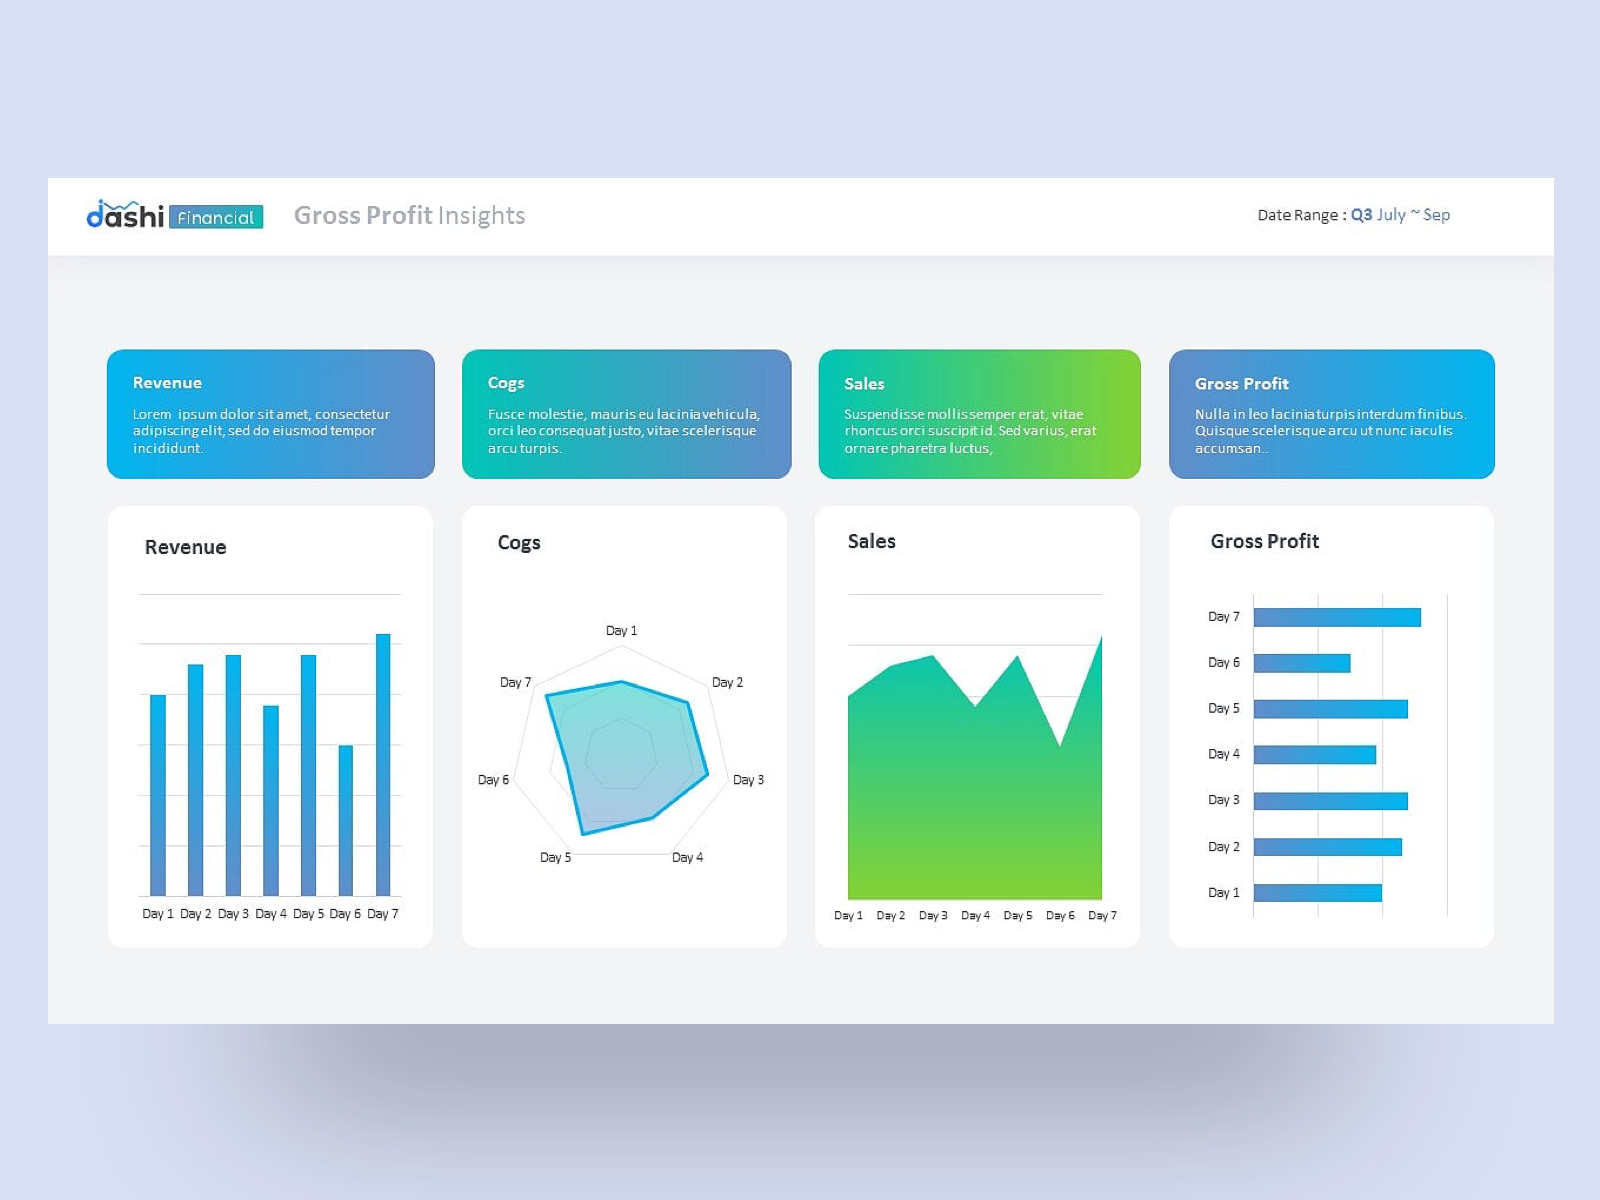 Dashi Financial Dashboard Powerpoint Template By Premast On Dribbble,Factorial Experimental Design